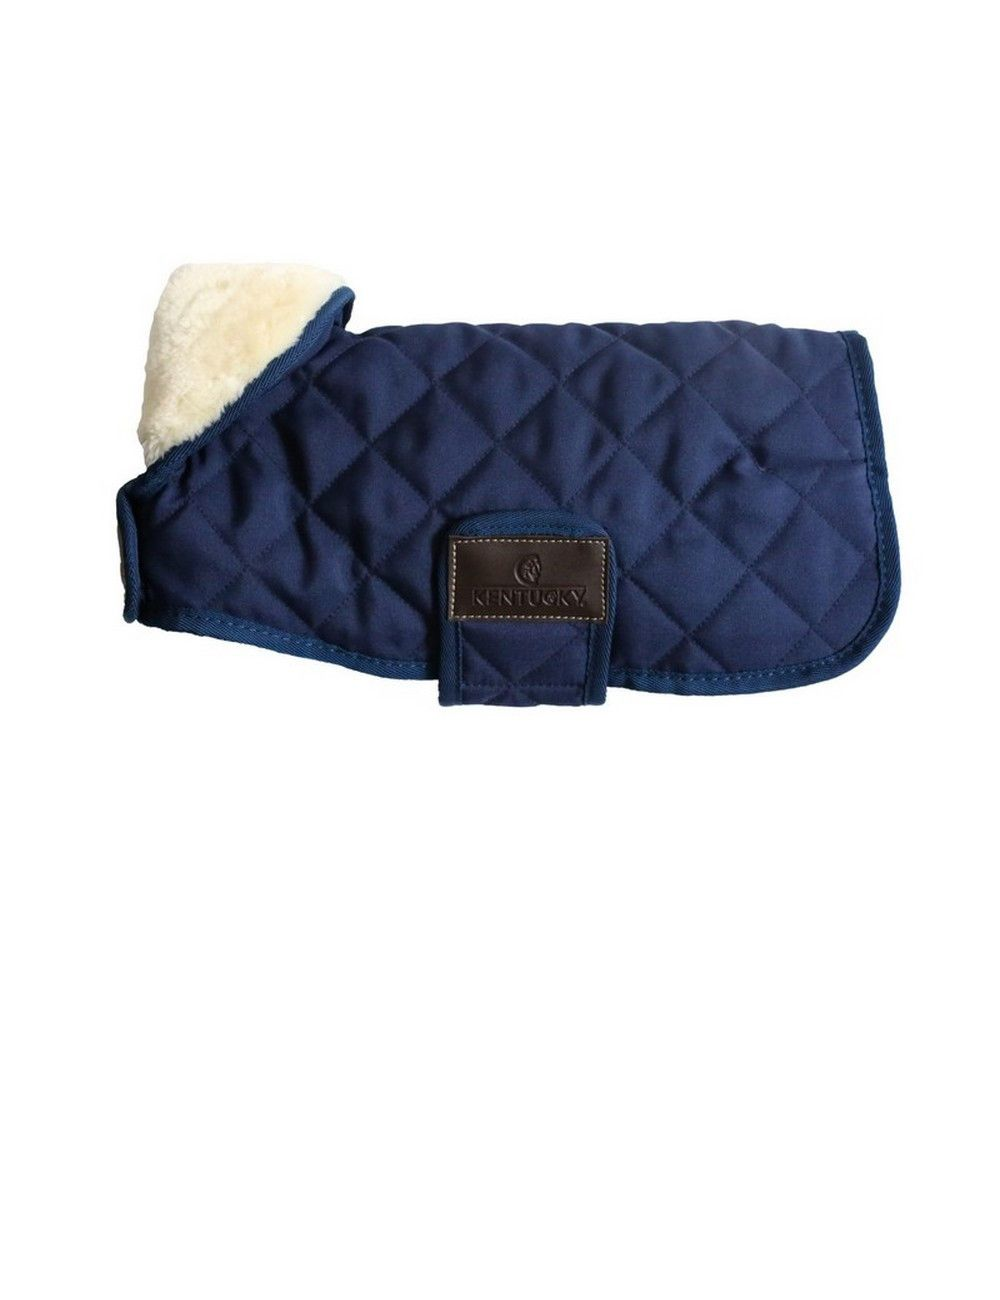 Kentucky Dogwear dog coat - 1